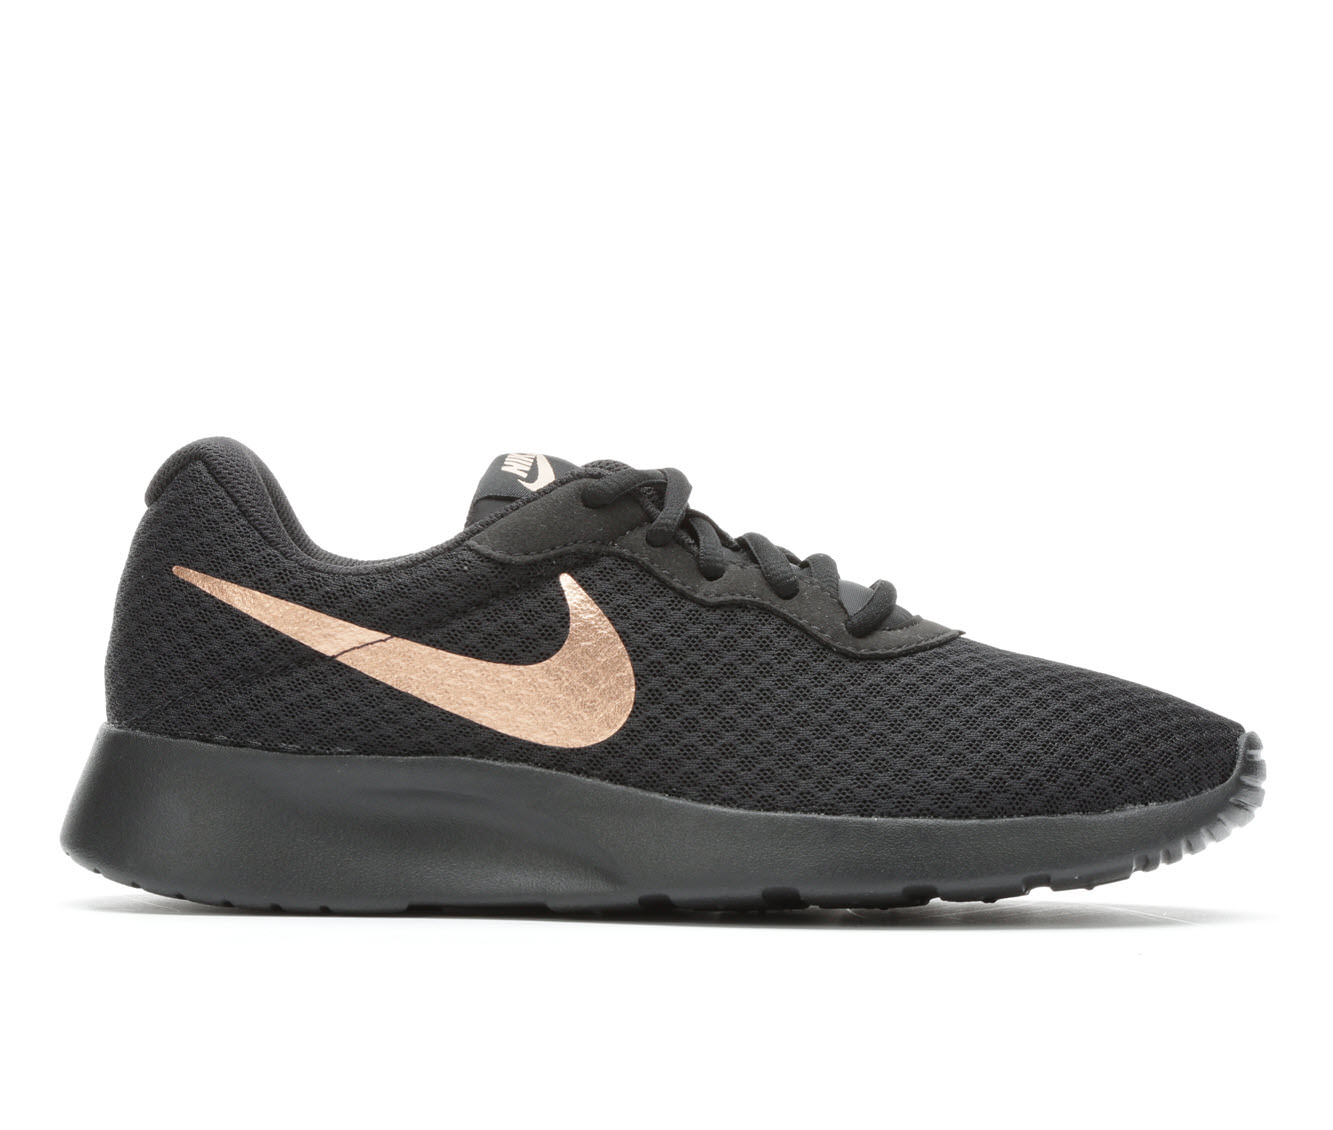 Nike Tanjun Women's Athletic Shoe (Black)